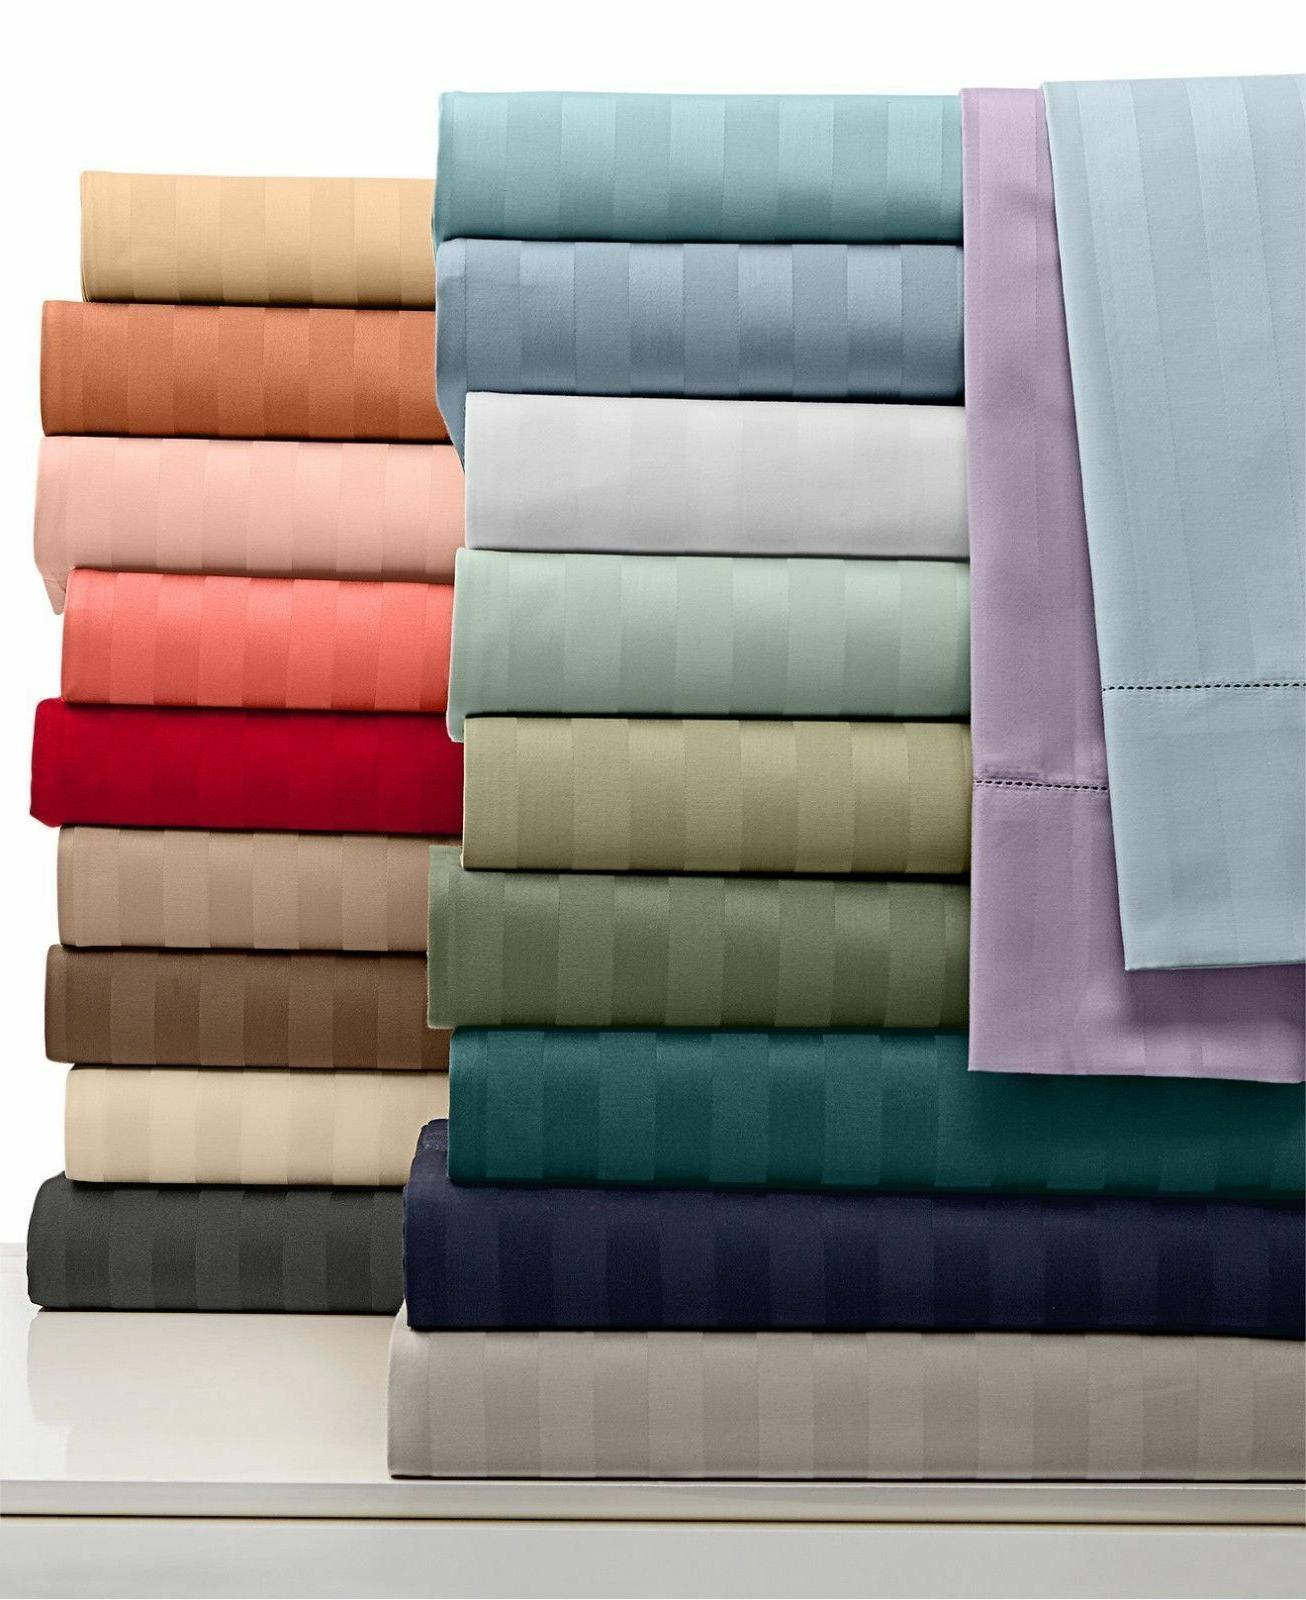 2 twin xl sheets, a sheet and 6 pillow Pure